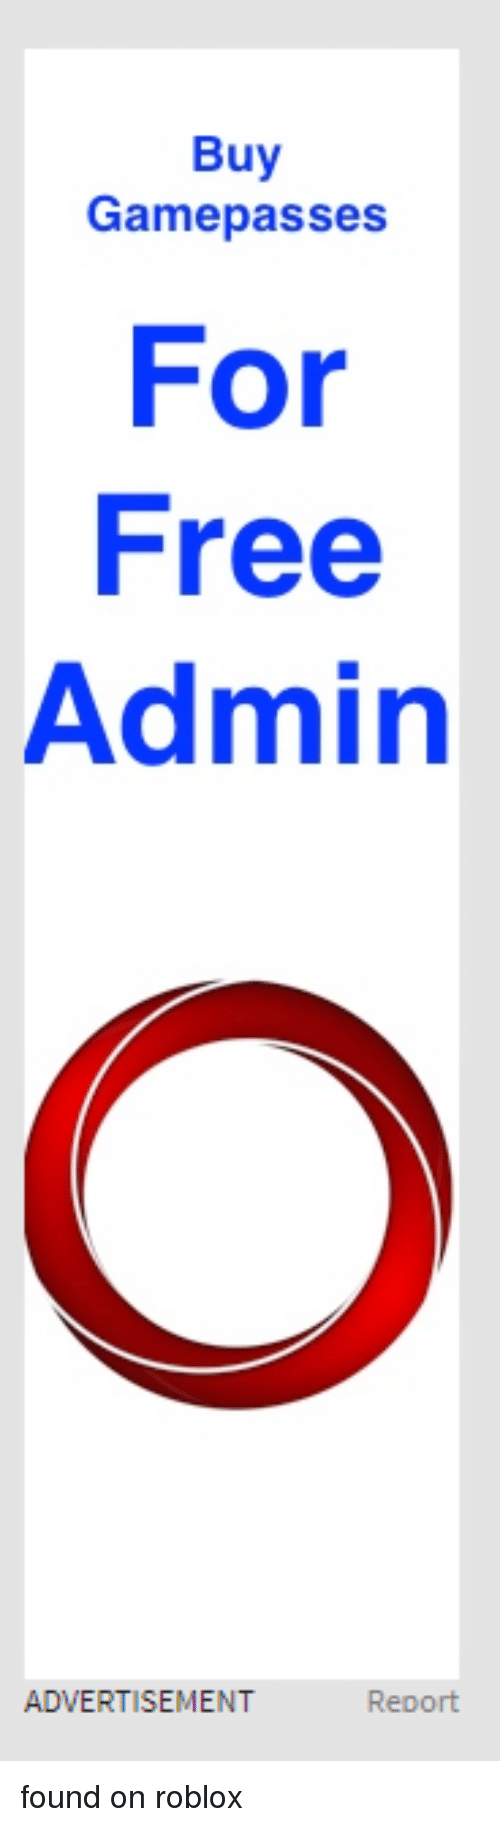 Free Admin Roblox - Wholefed org